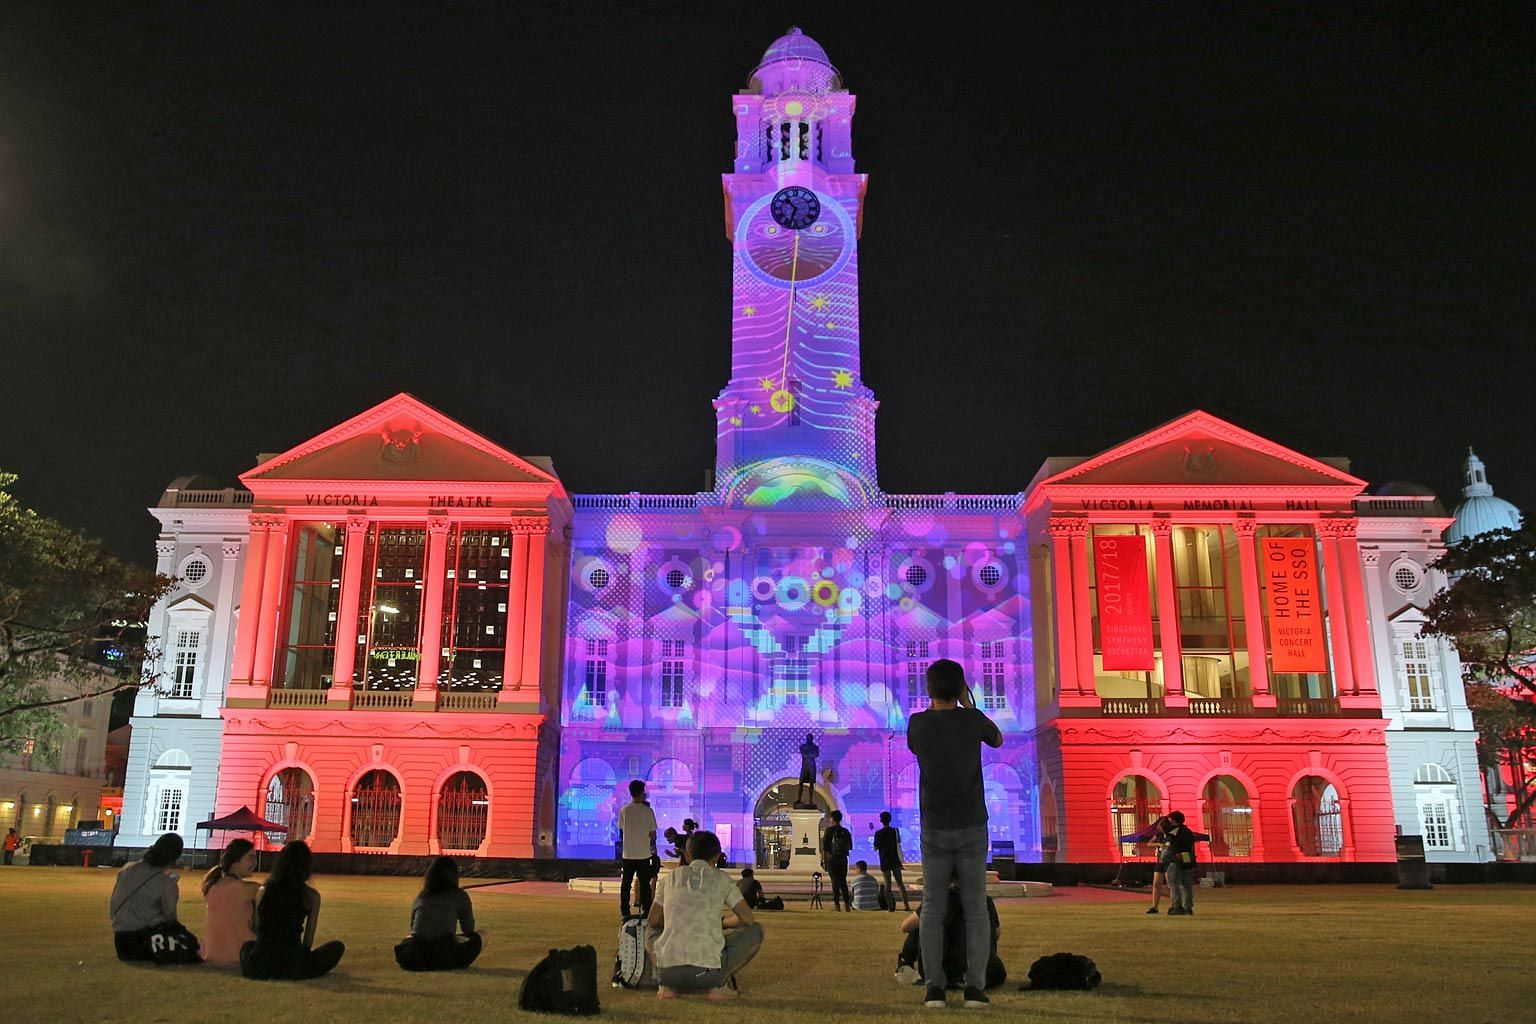 This multimedia projection, called Hemera's Dream, was mapped onto the facade of the Victoria Theatre and Victoria Concert Hall as part of the media preview yesterday for the first civic district light-up. The facades of the National Gallery Singapor